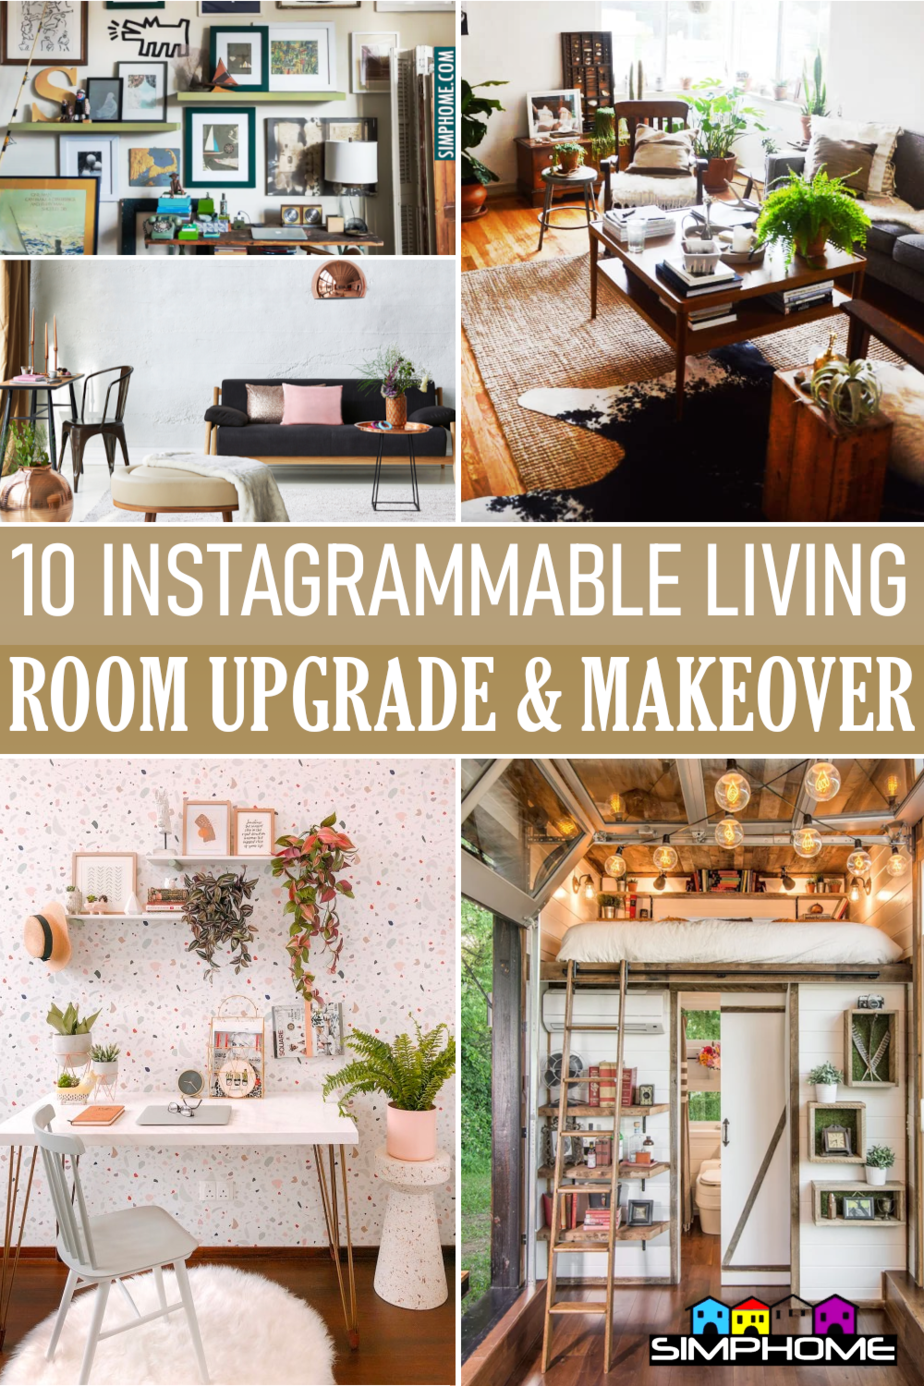 10 Instagrammable Living Room Upgrade Ideas via Simphome.comFeatured